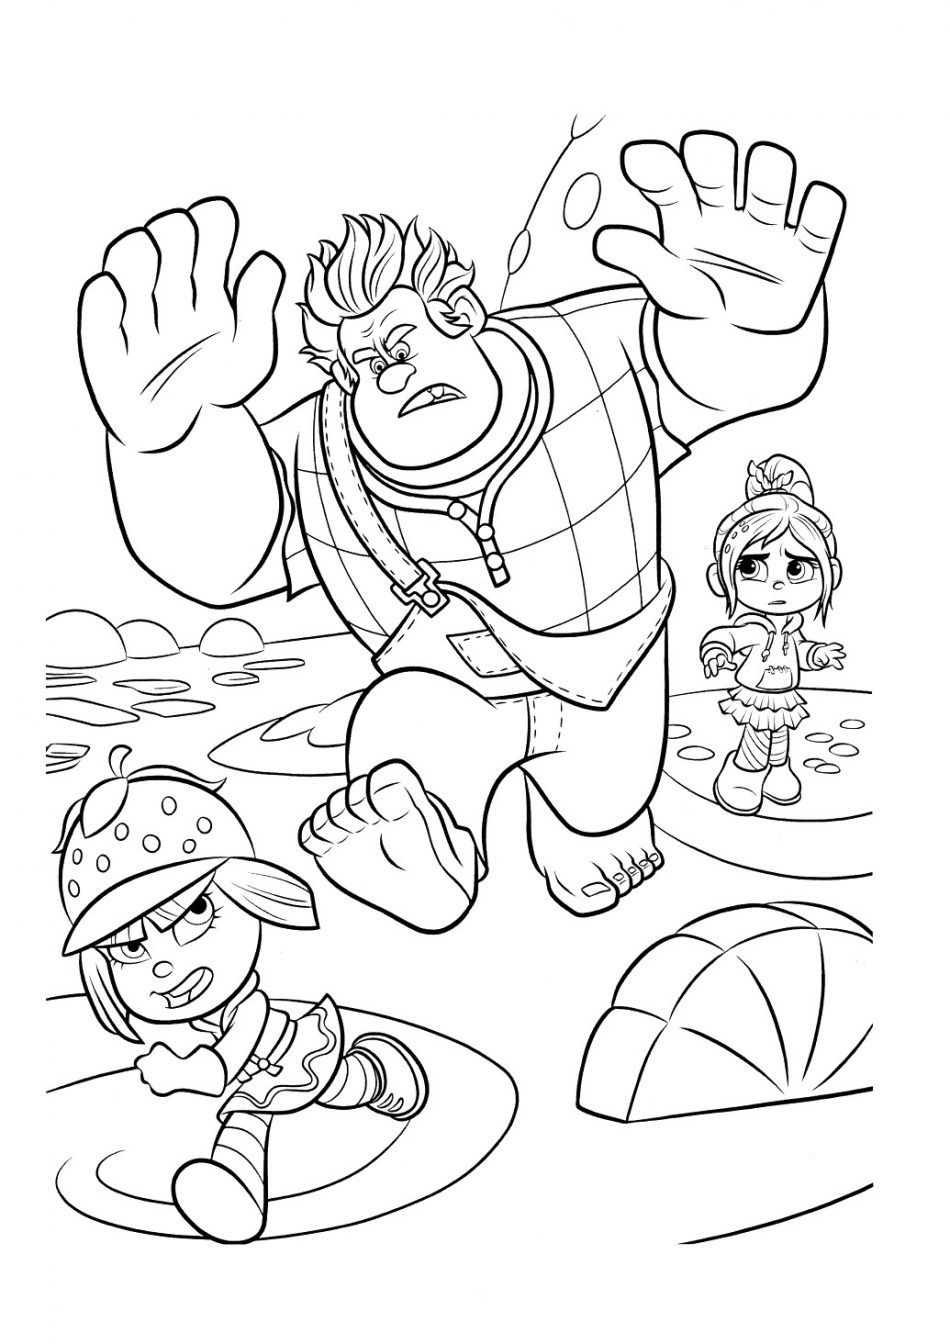 Ralph Vanelope And Taffyta Coloring Book In 2020 Coloring Pages Disney Coloring Pages Coloring Books